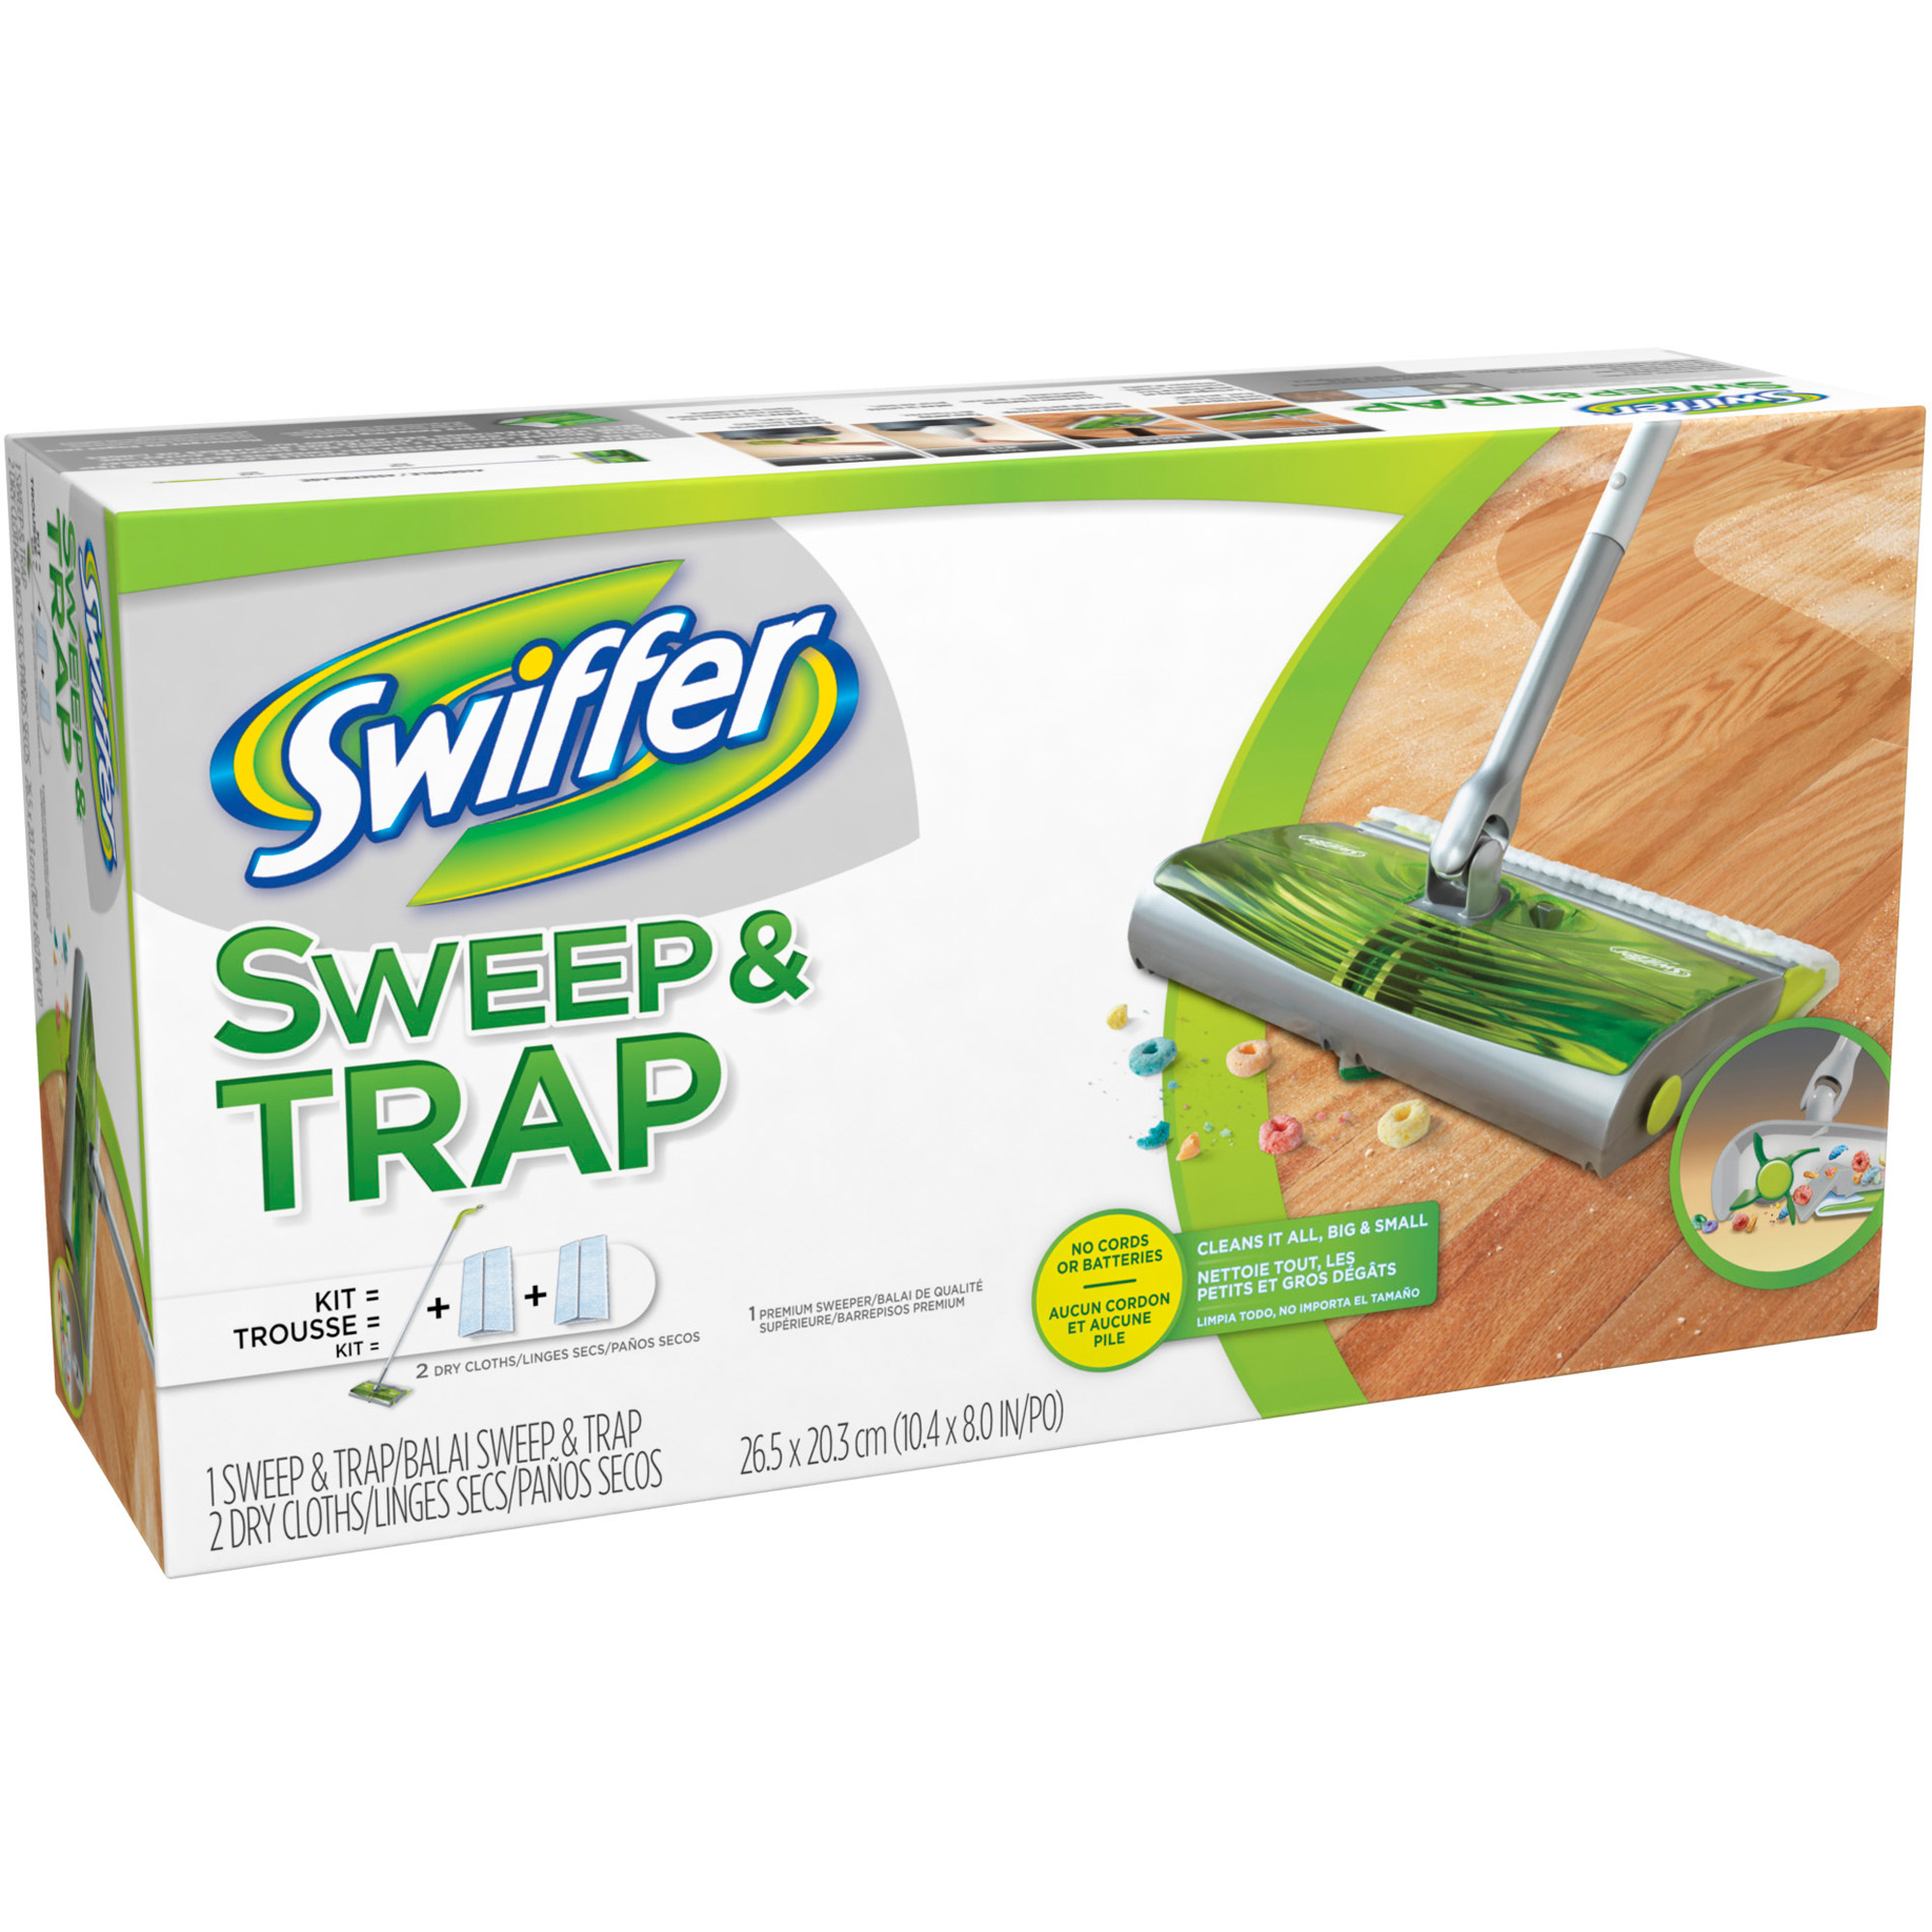 Swiffer Sweep & Trap Starter Kit